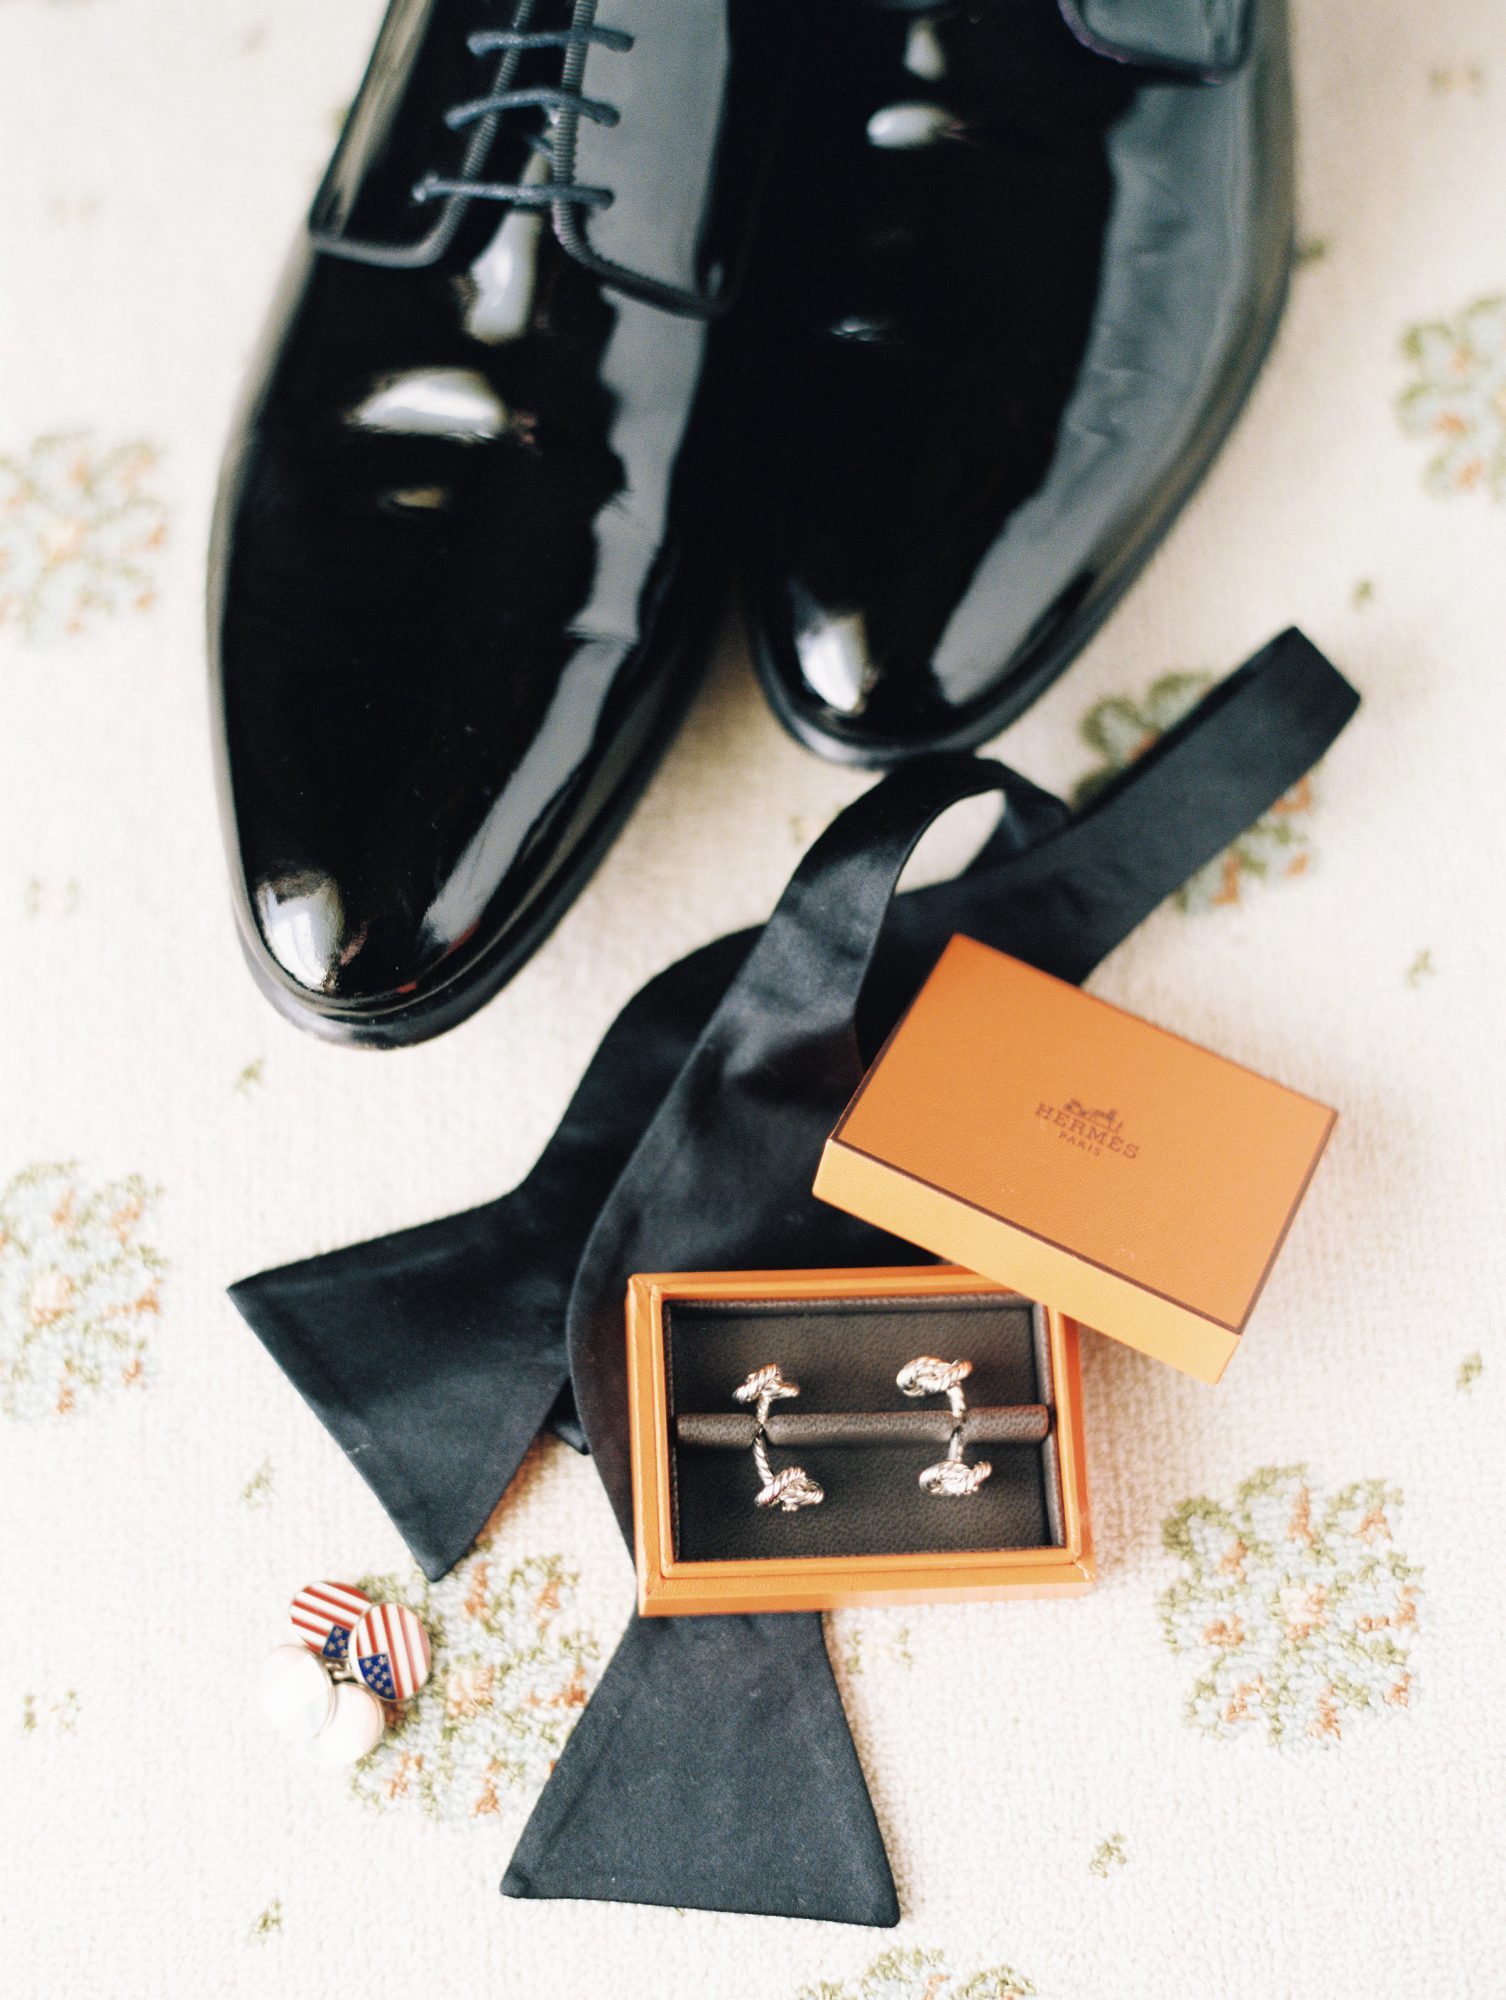 ramsey charles ireland wedding accessories rings cuff links shoes bowtie